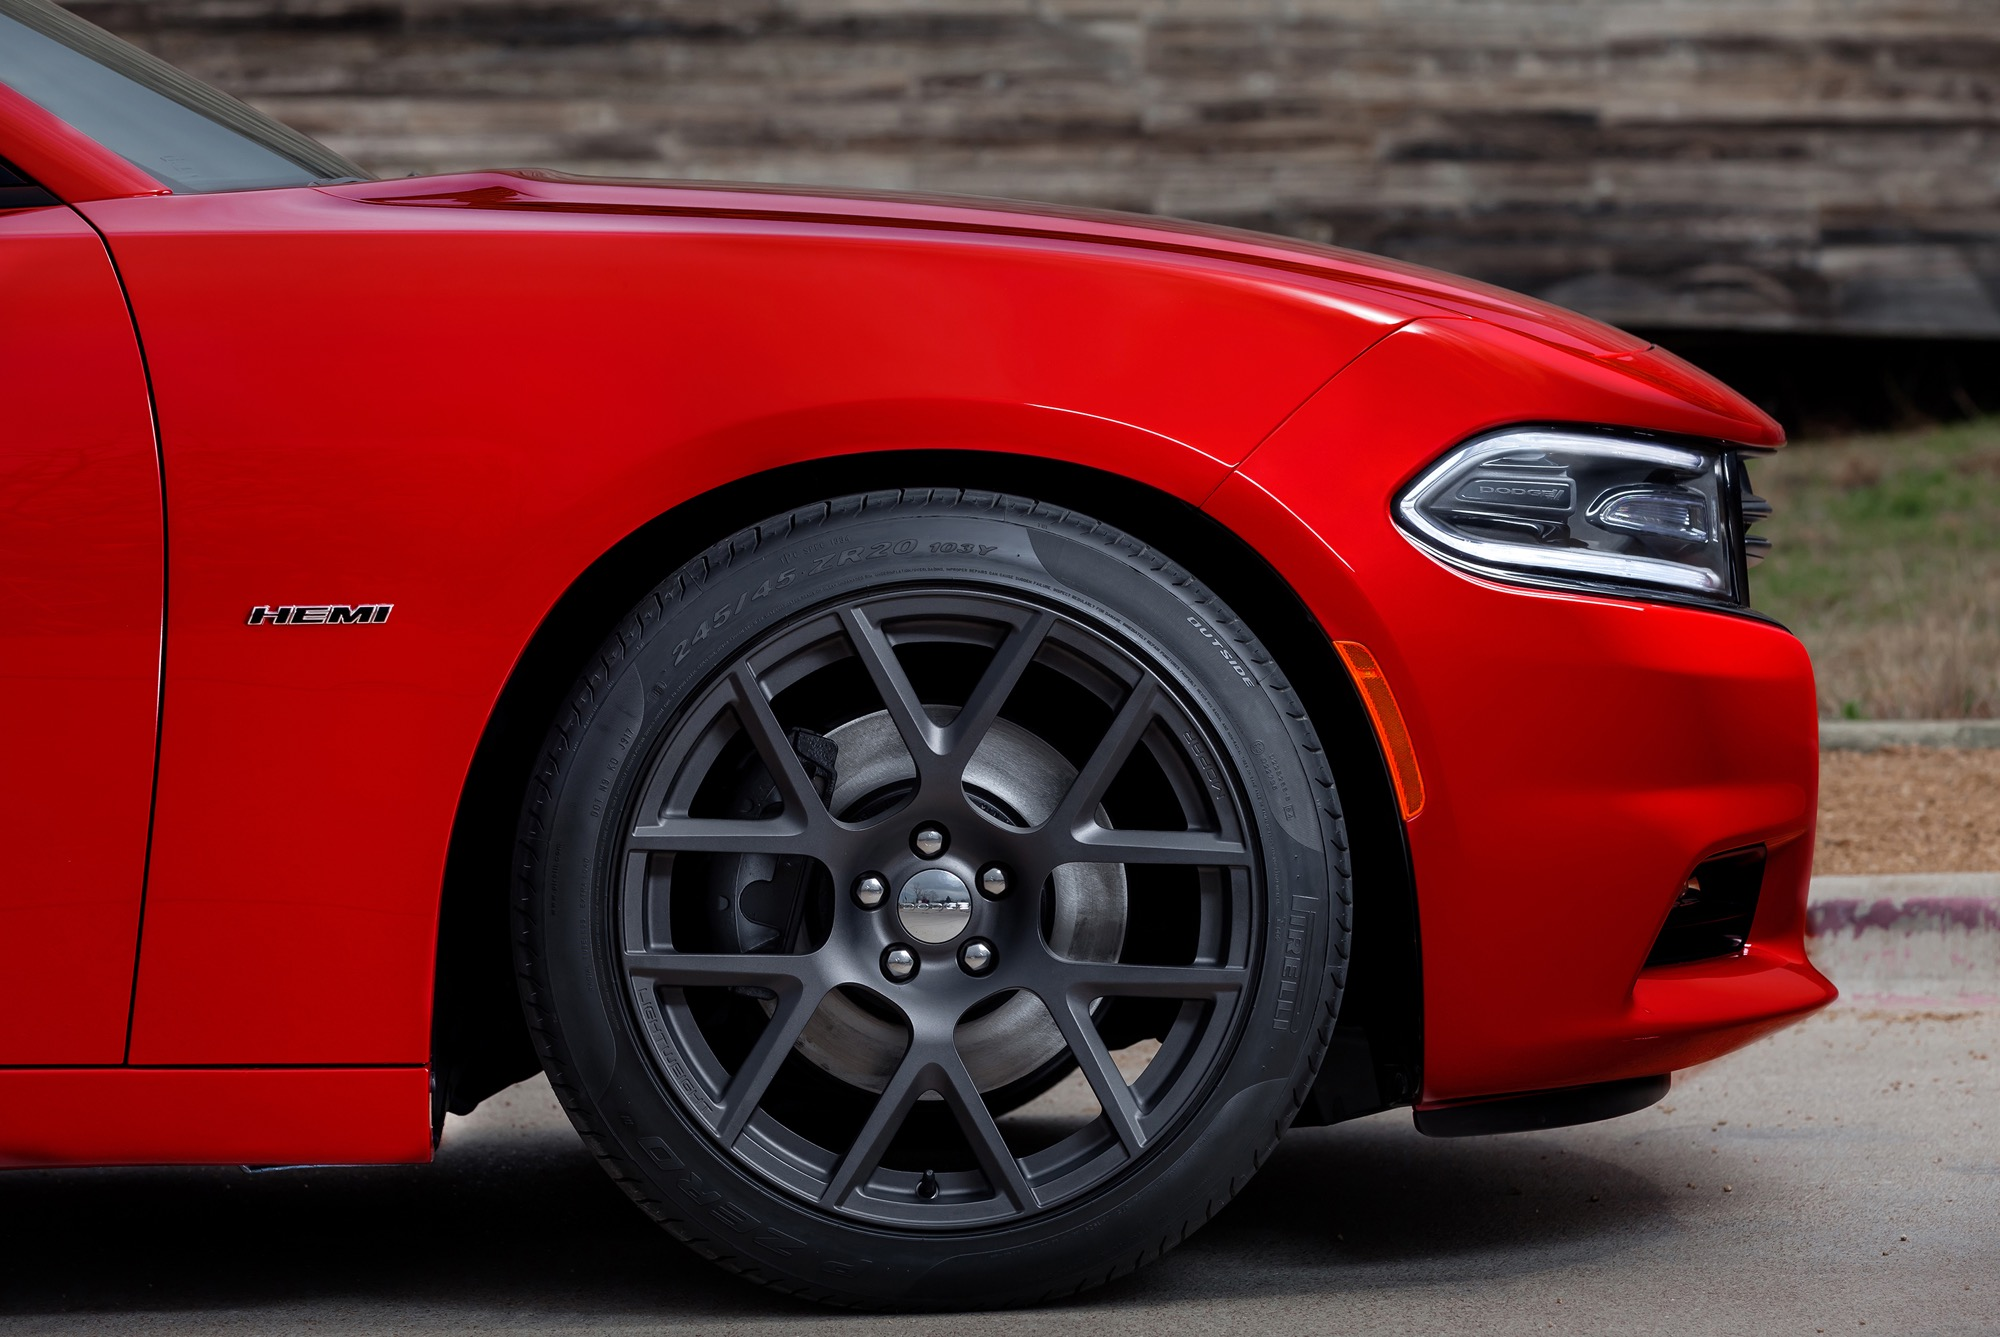 thumbs 2015 dodge charger exterior 2 - Dodge Charger 2015 Exterior